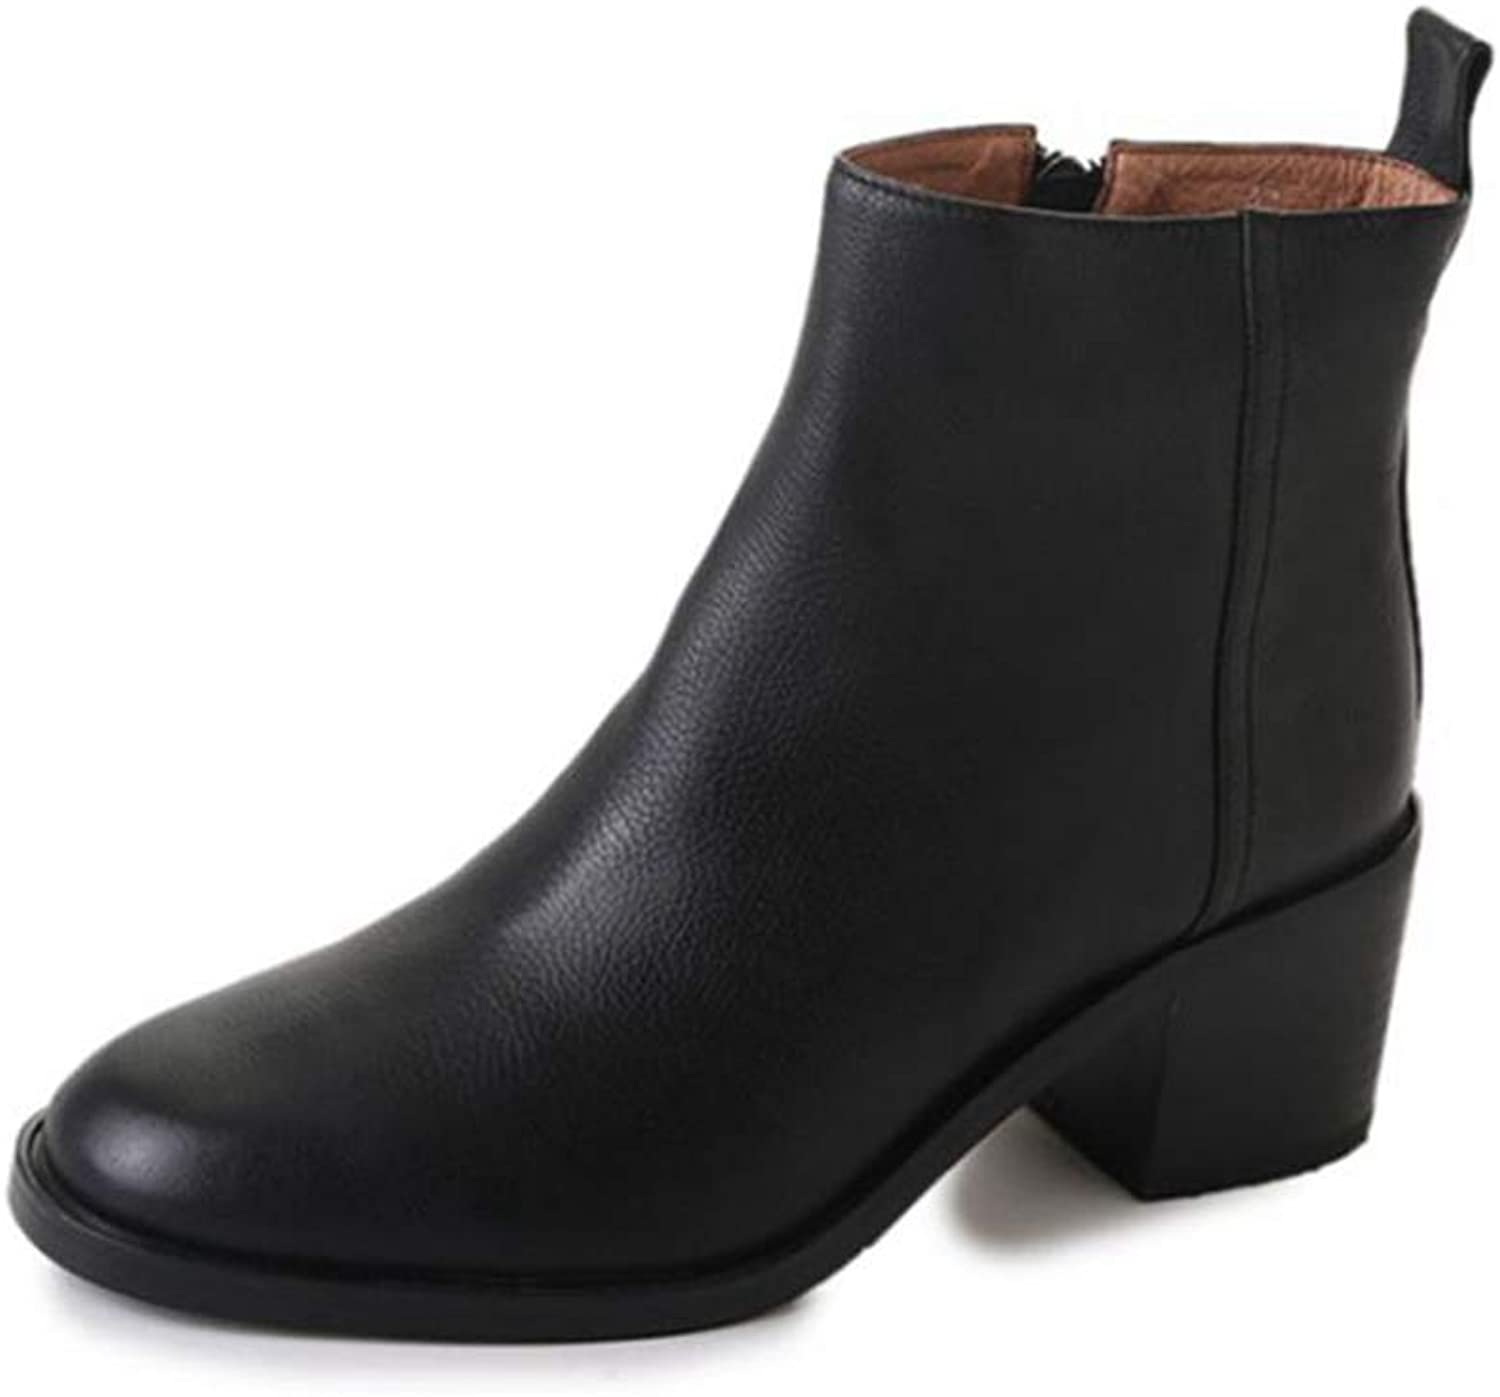 SENERY Winter Ankle Boots for Women Black Round Toe Thick Heel Botas women Zipper PU Leather Booties